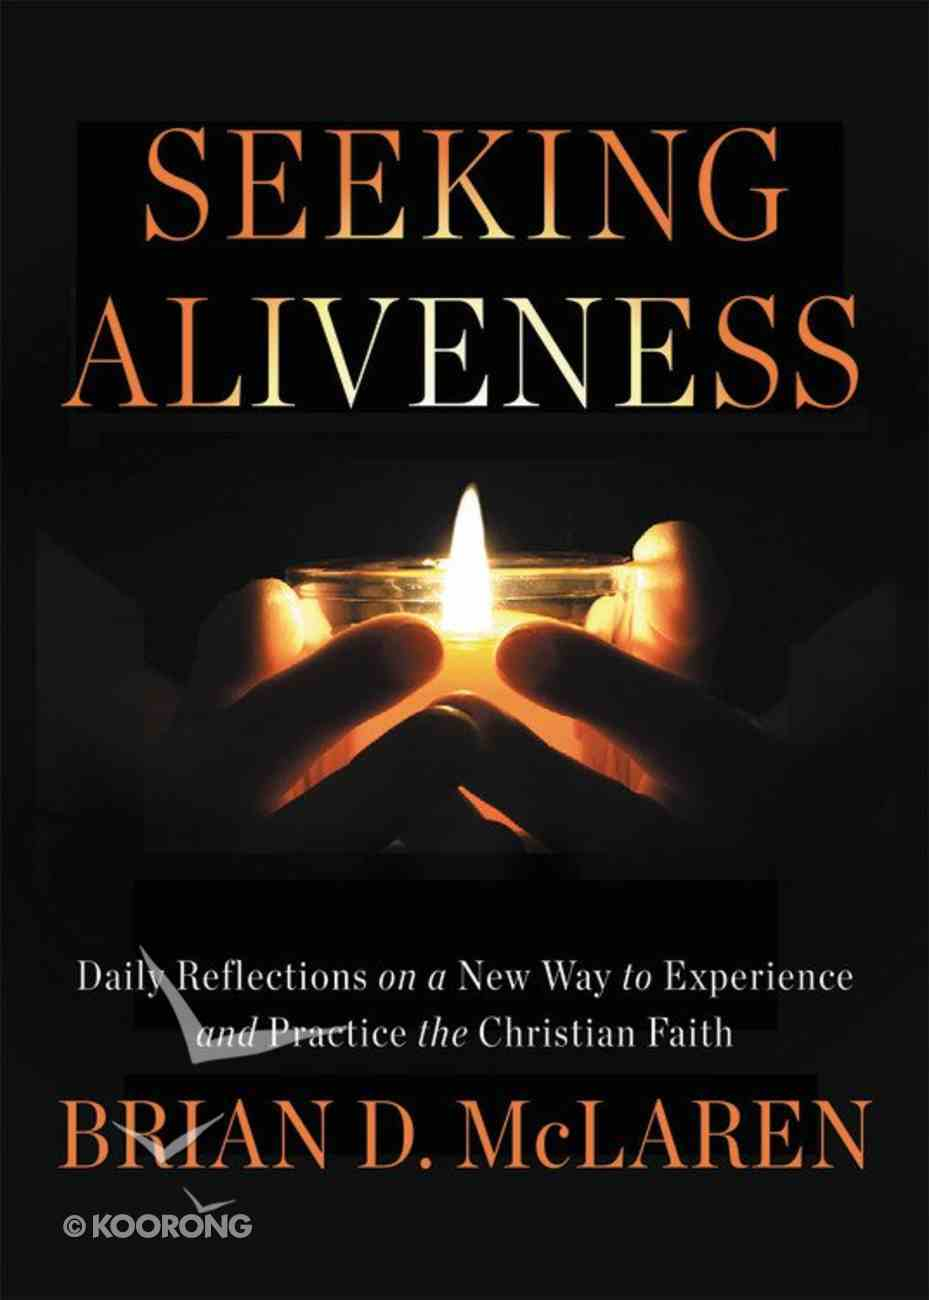 Seeking Aliveness: Daily Reflections on a New Way to Experience and Practice the Christian Faith Paperback